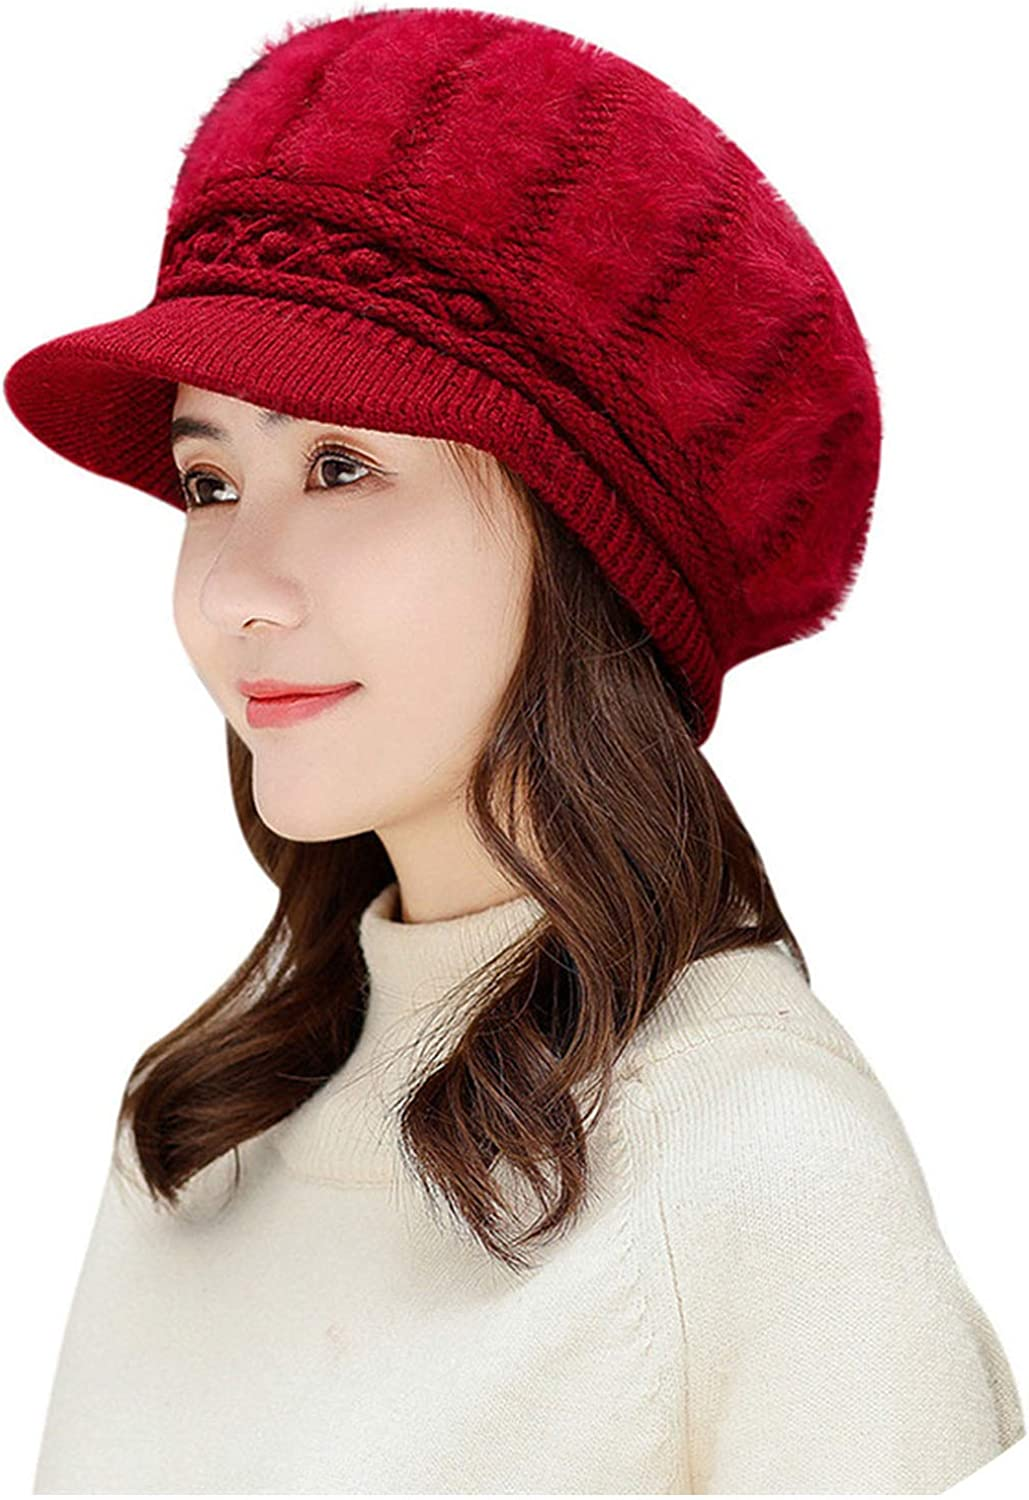 Toshiko-M Women Winter Warm...